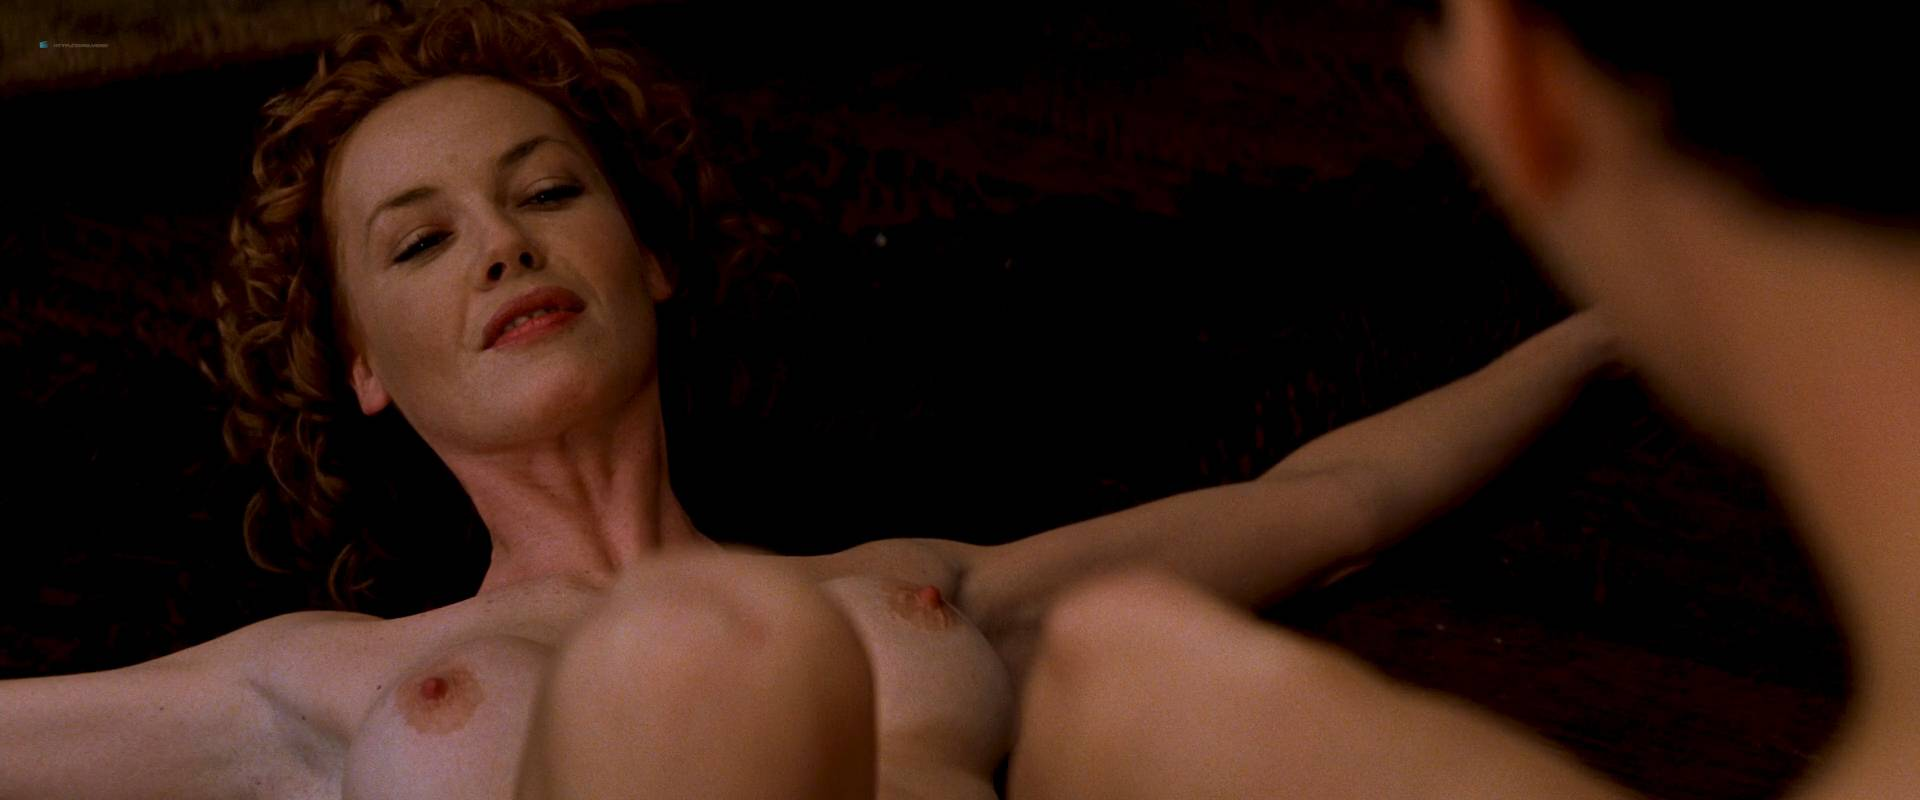 Nude Full Frontal And Connie Nielsen Nude And Sex The -6300